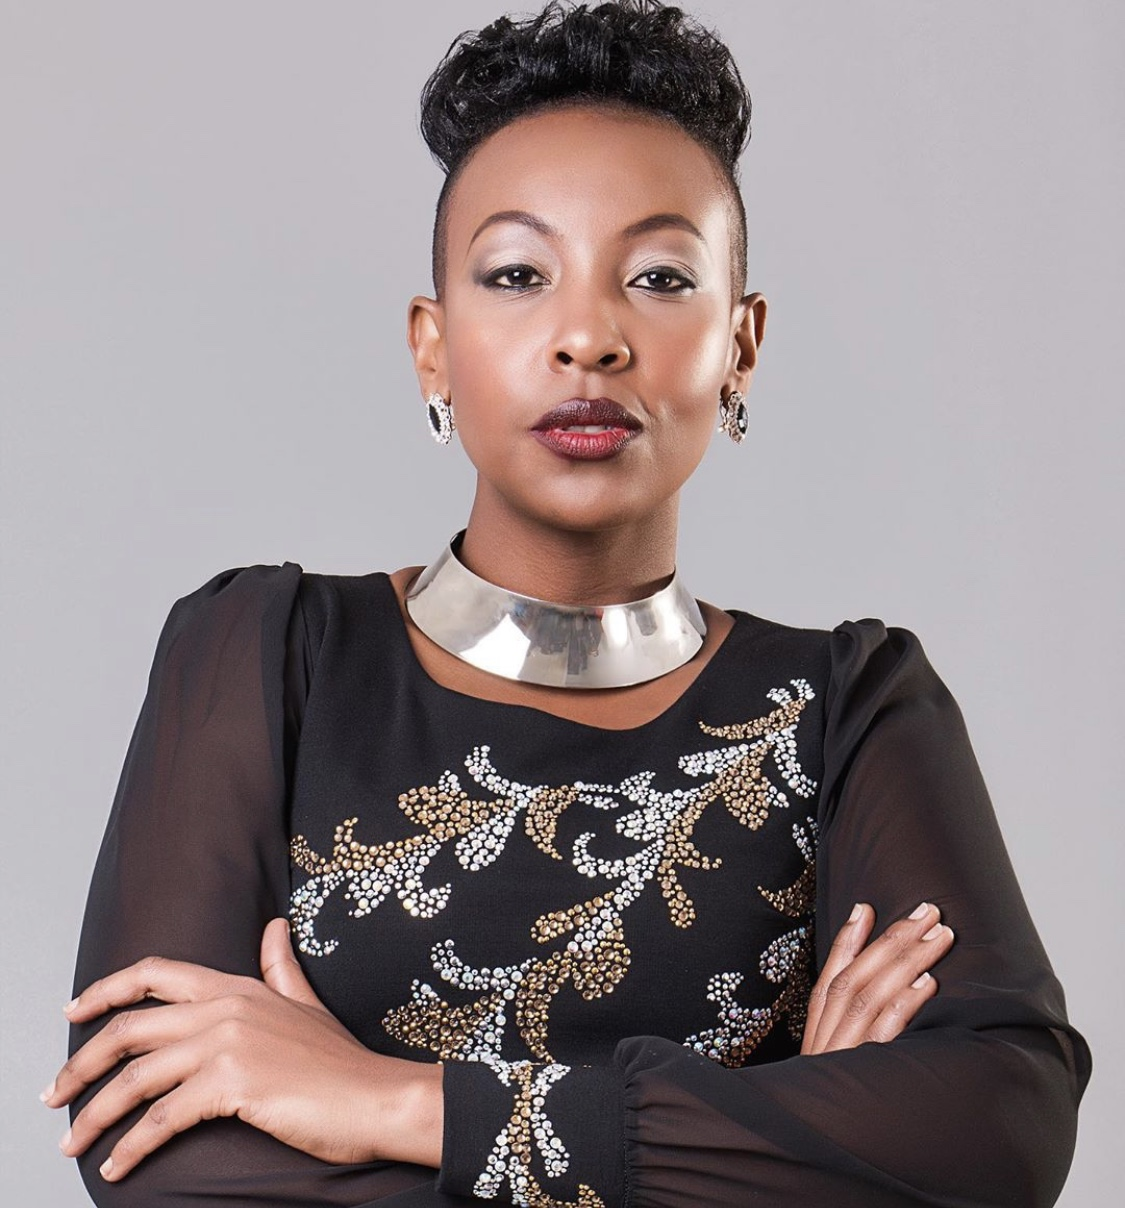 Mwalimu Rachel parades the only balls she squeezes weeks after she allegedly assaulted Miracle Baby's best-friend